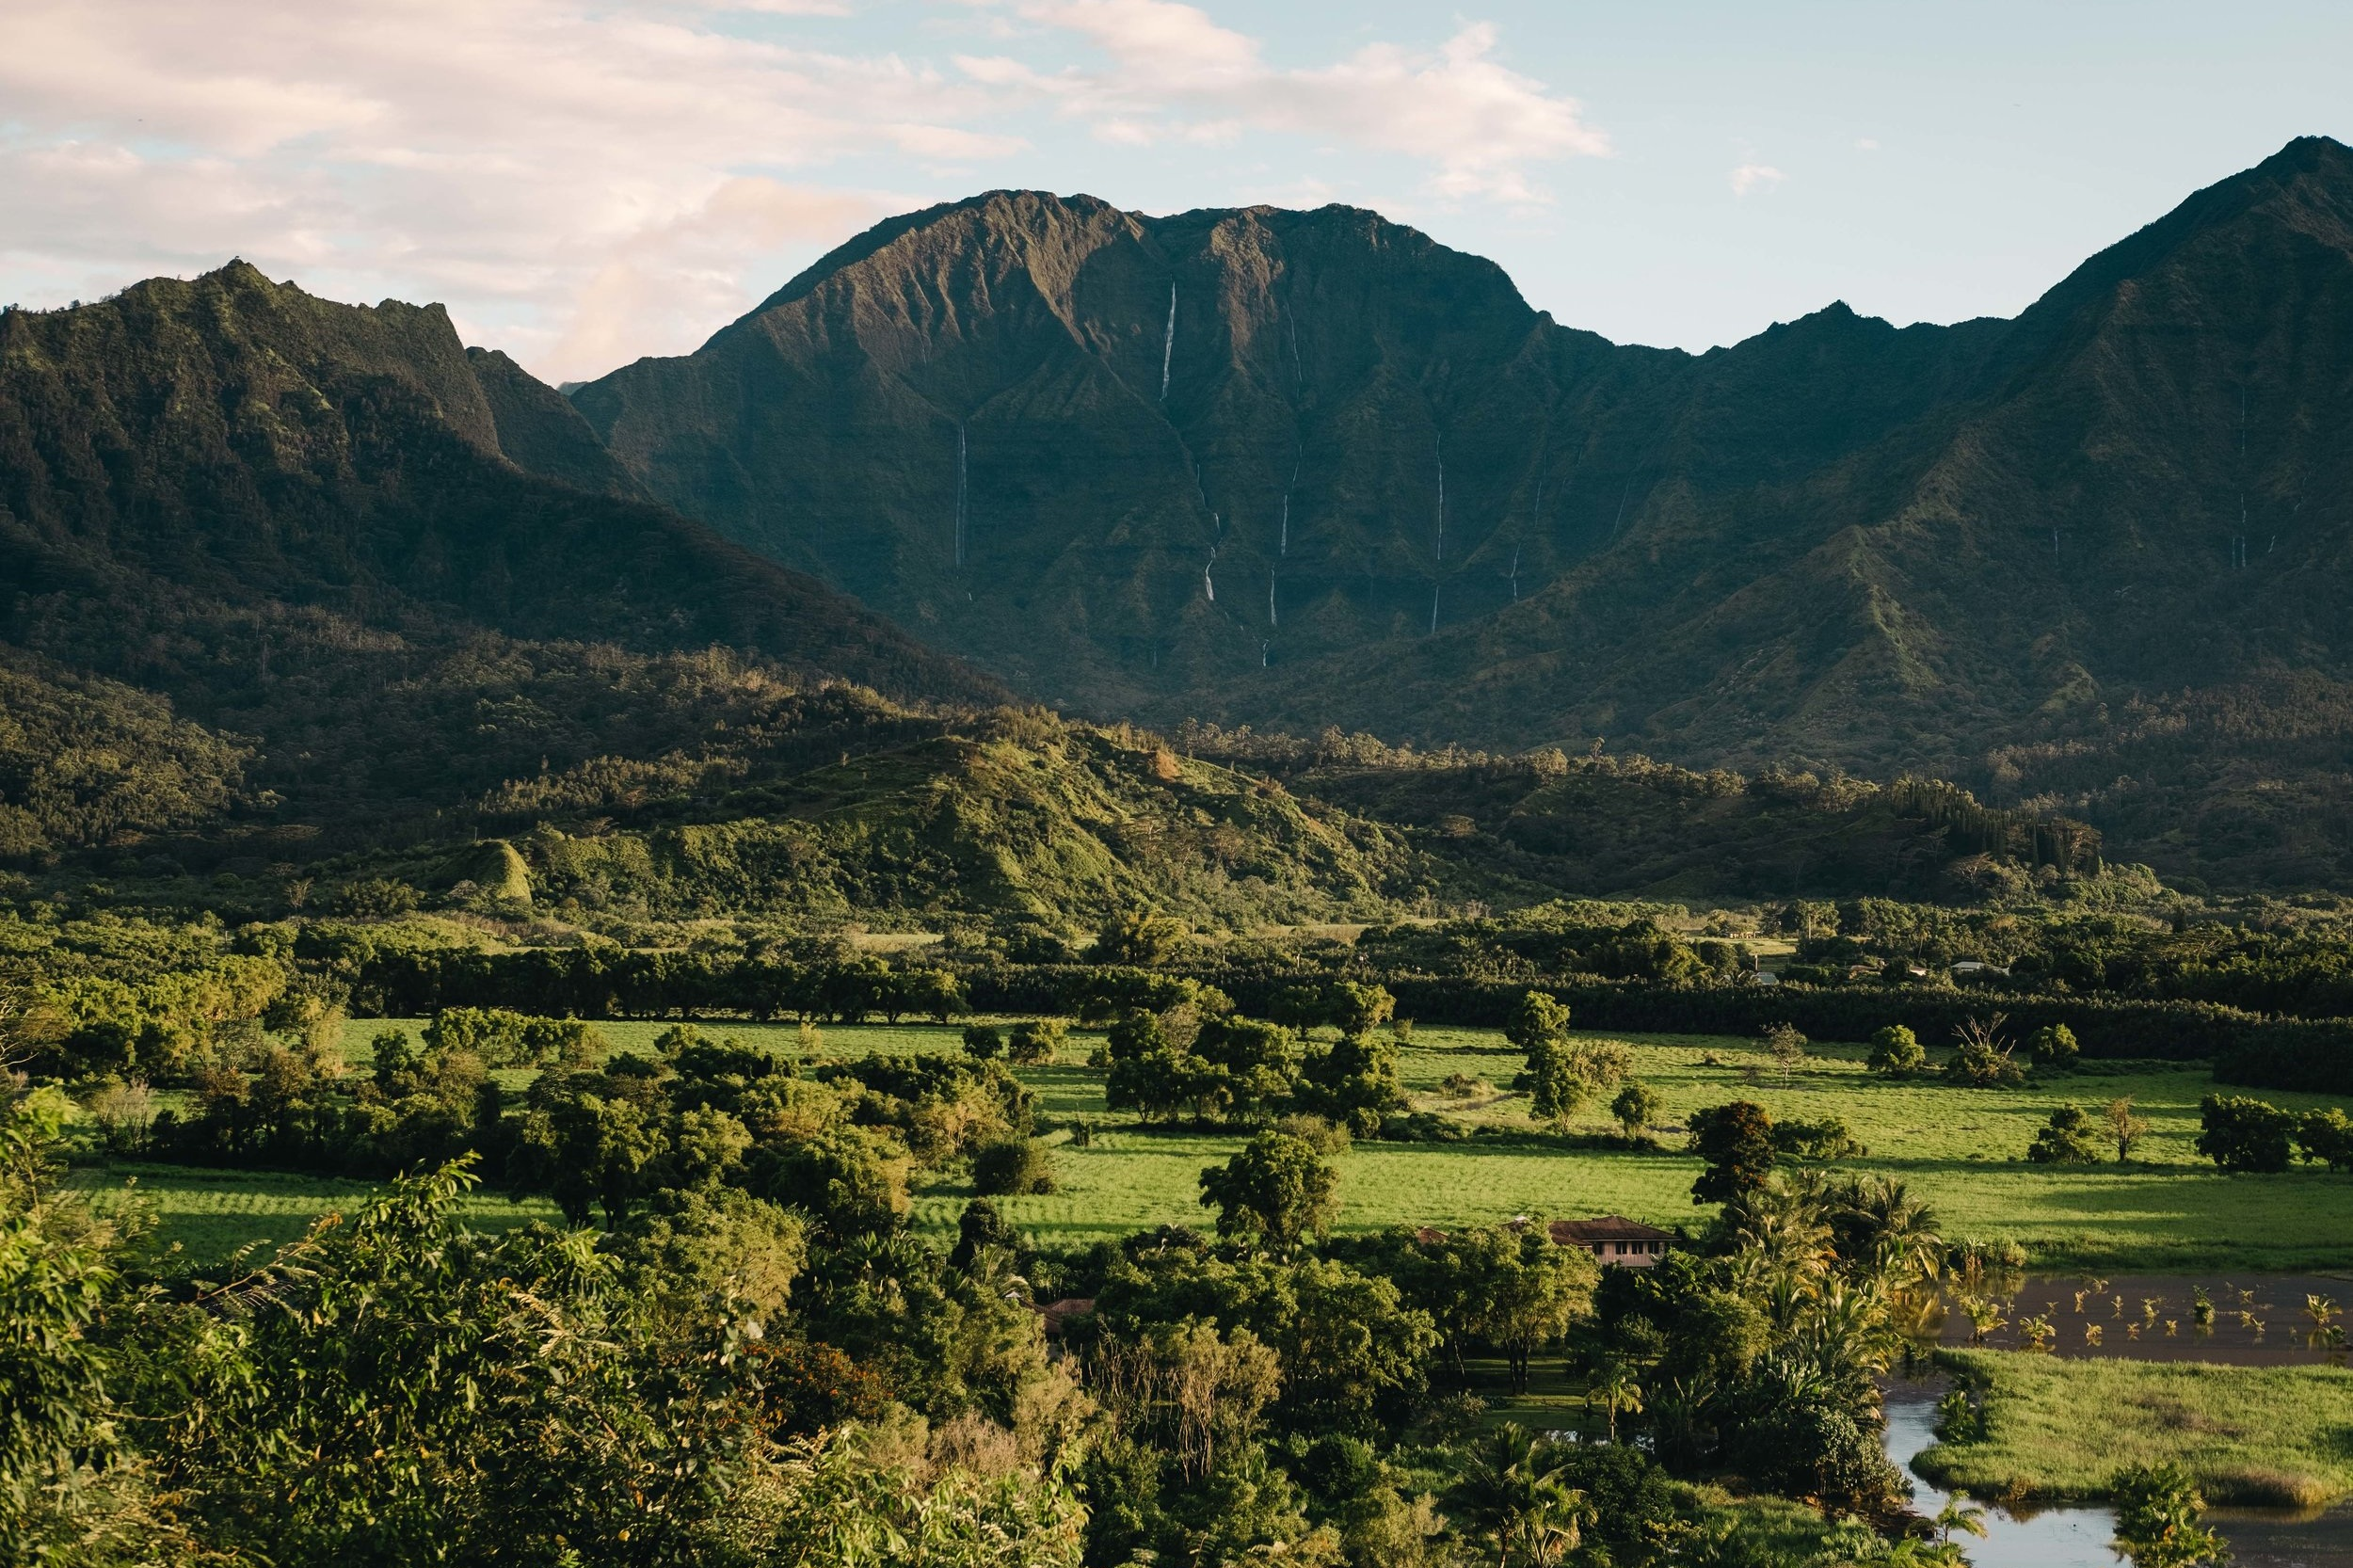 Cookwilltravel+-++Kauai+-+August+-+48.jpg